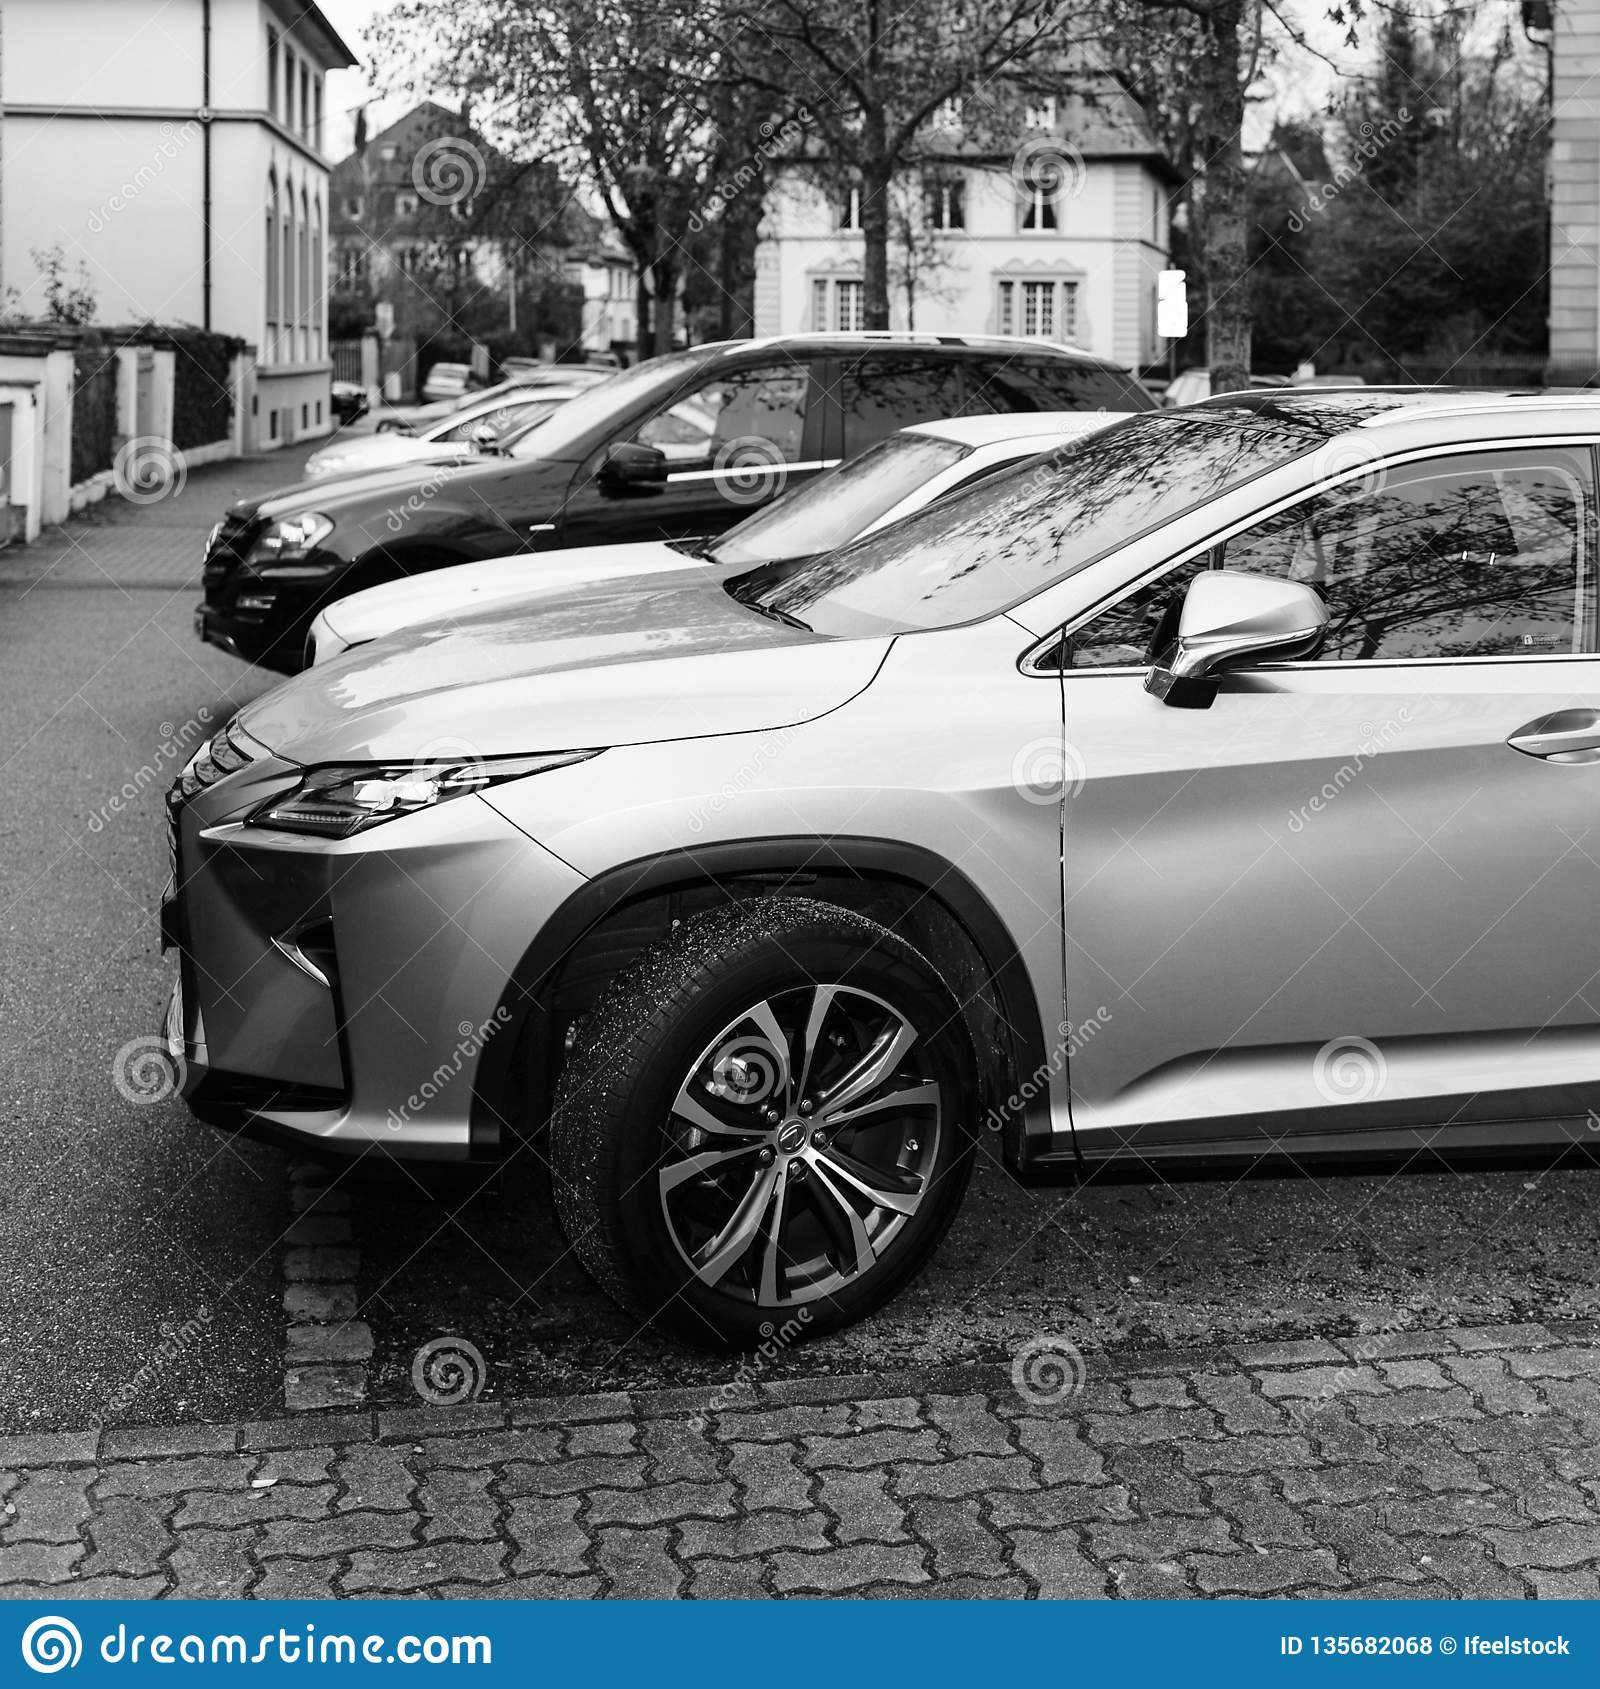 LEXUS RX 450h Luxury Car Parked On The Street In France